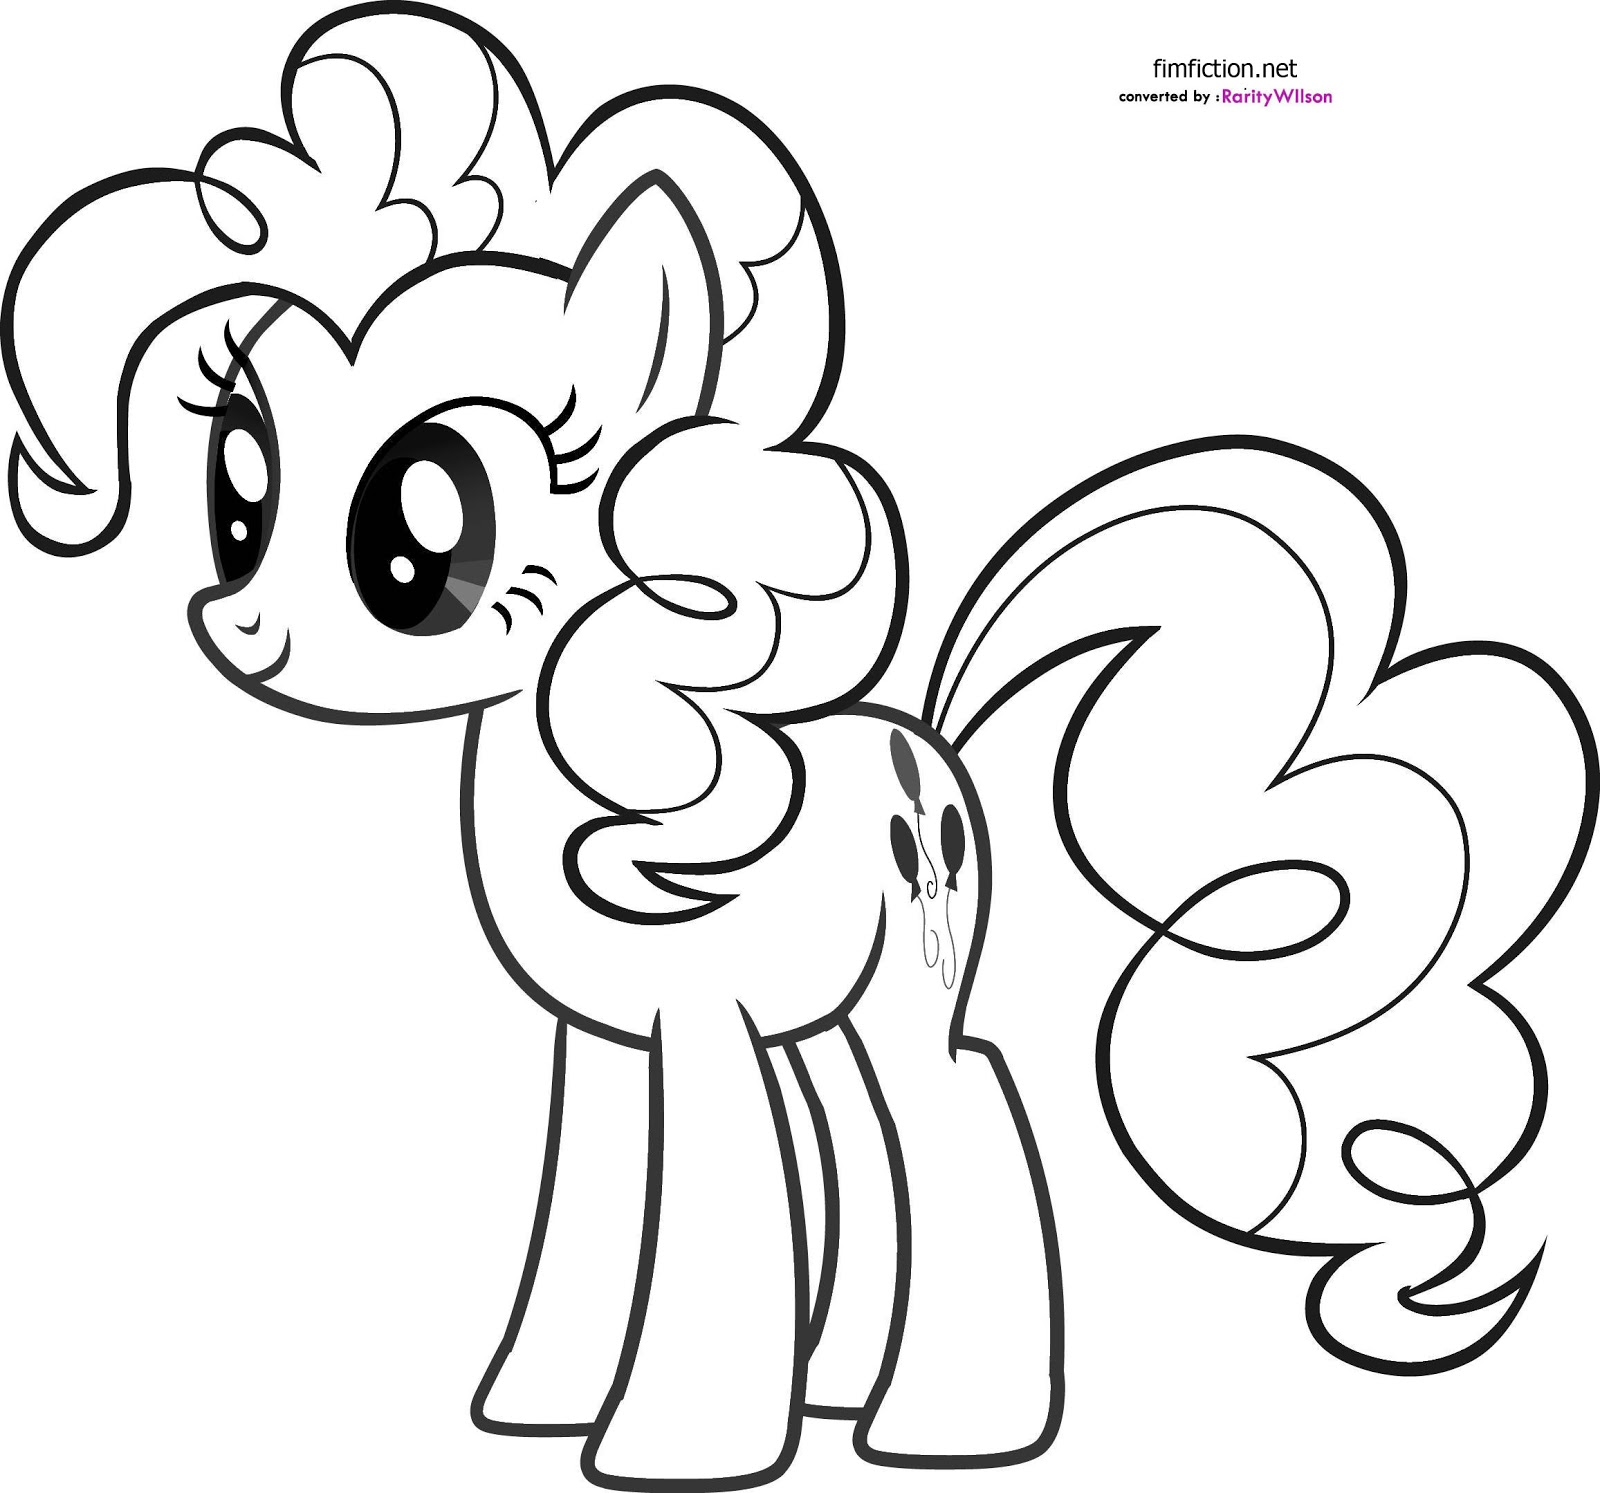 mlp printables my little pony coloring pages mlp printables